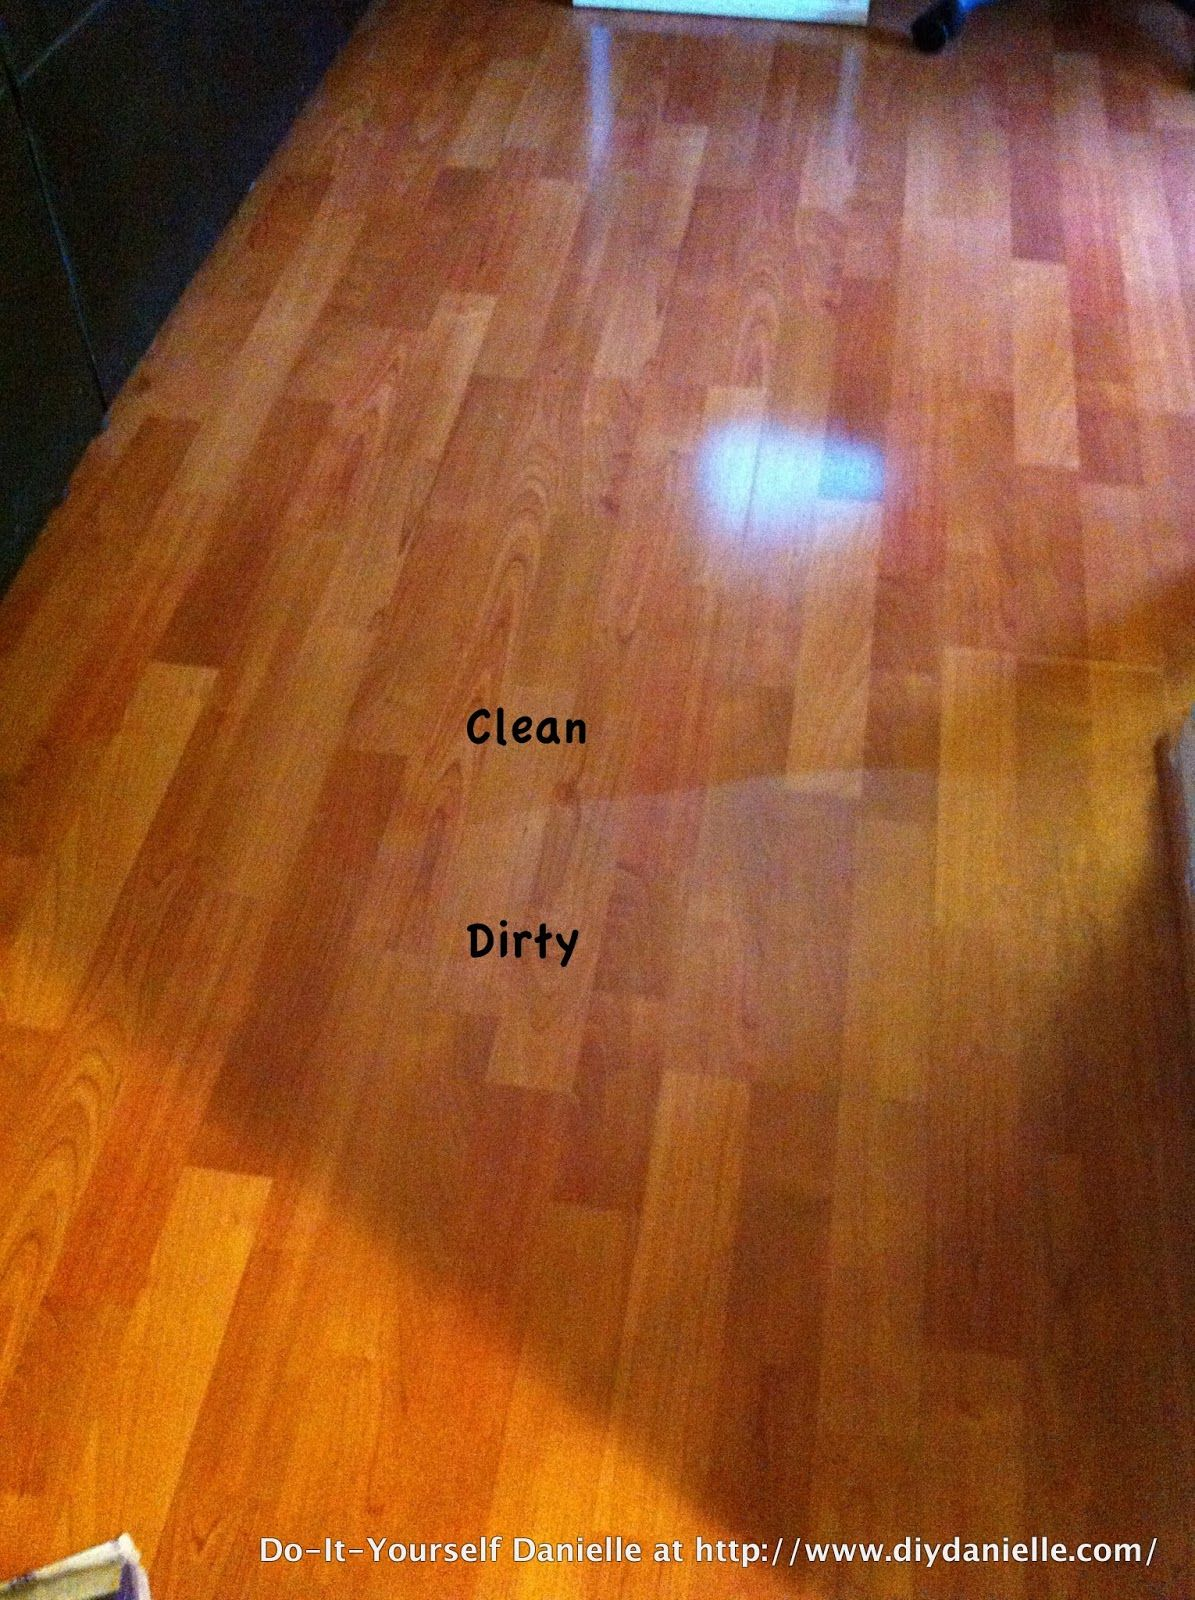 Diy Laminate Floor Spray Cleaner Dew Fer Now How To